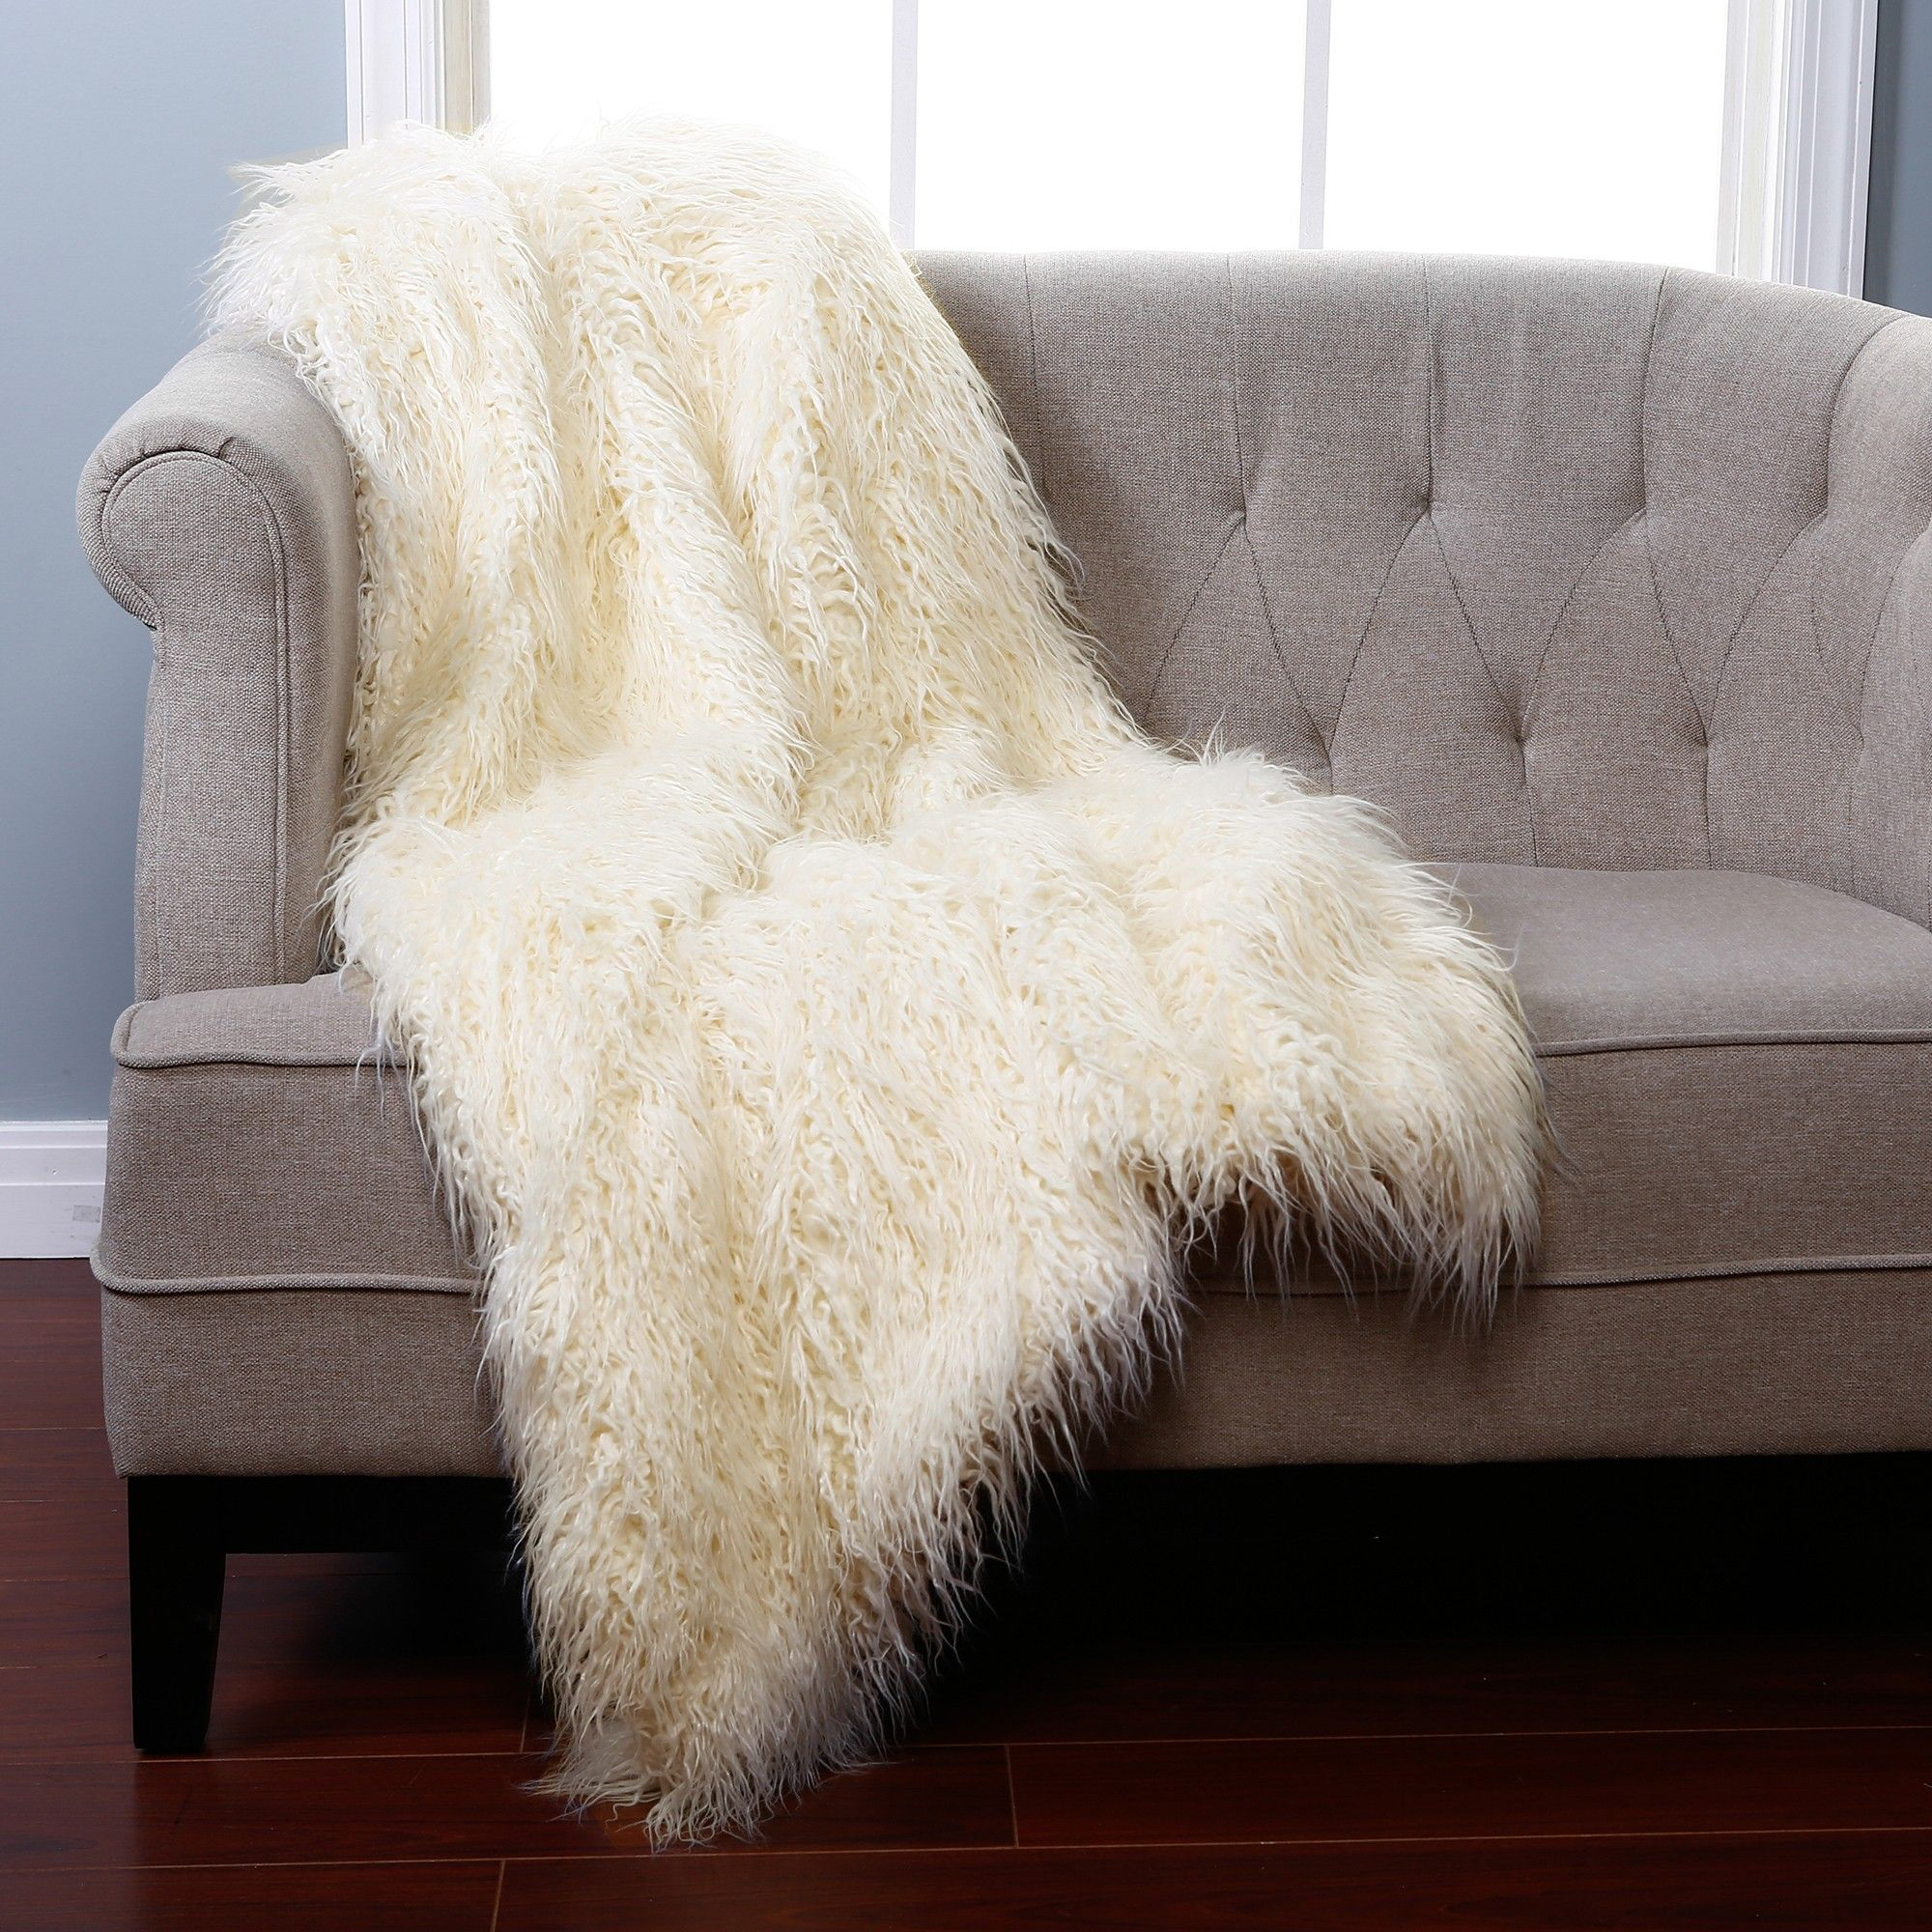 sheepskin throw blanket Google Search